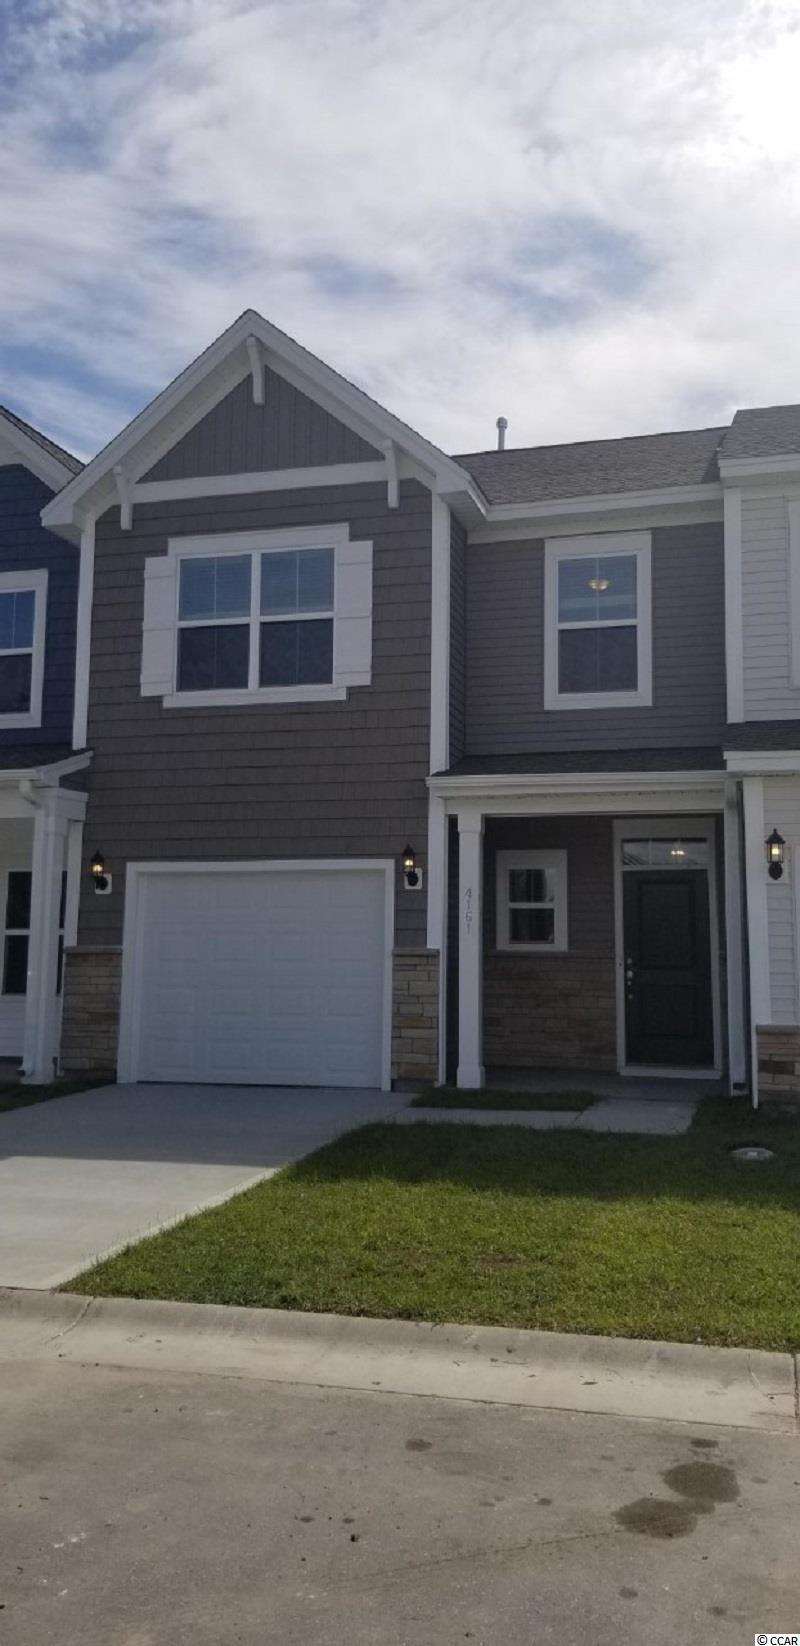 This home boasts front and rear porches.  All bedrooms are located on the second floor.  Family room, dining area and kitchen are all open.  Luxury vinyl plank flooring is throughout the first floor, large storage/coat closet, powder room and a pantry also are on the main level. The family room includes a ceiling fan. The kitchen has white cabinets, quartz countertops, ceramic backsplash tile, a gas range and counter height island  The primary suite has a 5' shower, double bowl vanity, tray ceiling with ceiling fan, linen and walk-in closet. The two guest bedrooms share a bath with a tub/shower.  Also included is a tankless hotwater heater, attic pull down stairs with storage and a single car garage.  Lawn maintenance is included in the low HOA fees.  Sidewalks throughout the community.  Pool, clubhouse, fitness room, bocce ball, pickle ball, horseshoes, putting green, fire pit and fishing ponds for your enjoyment.  Summer completion!